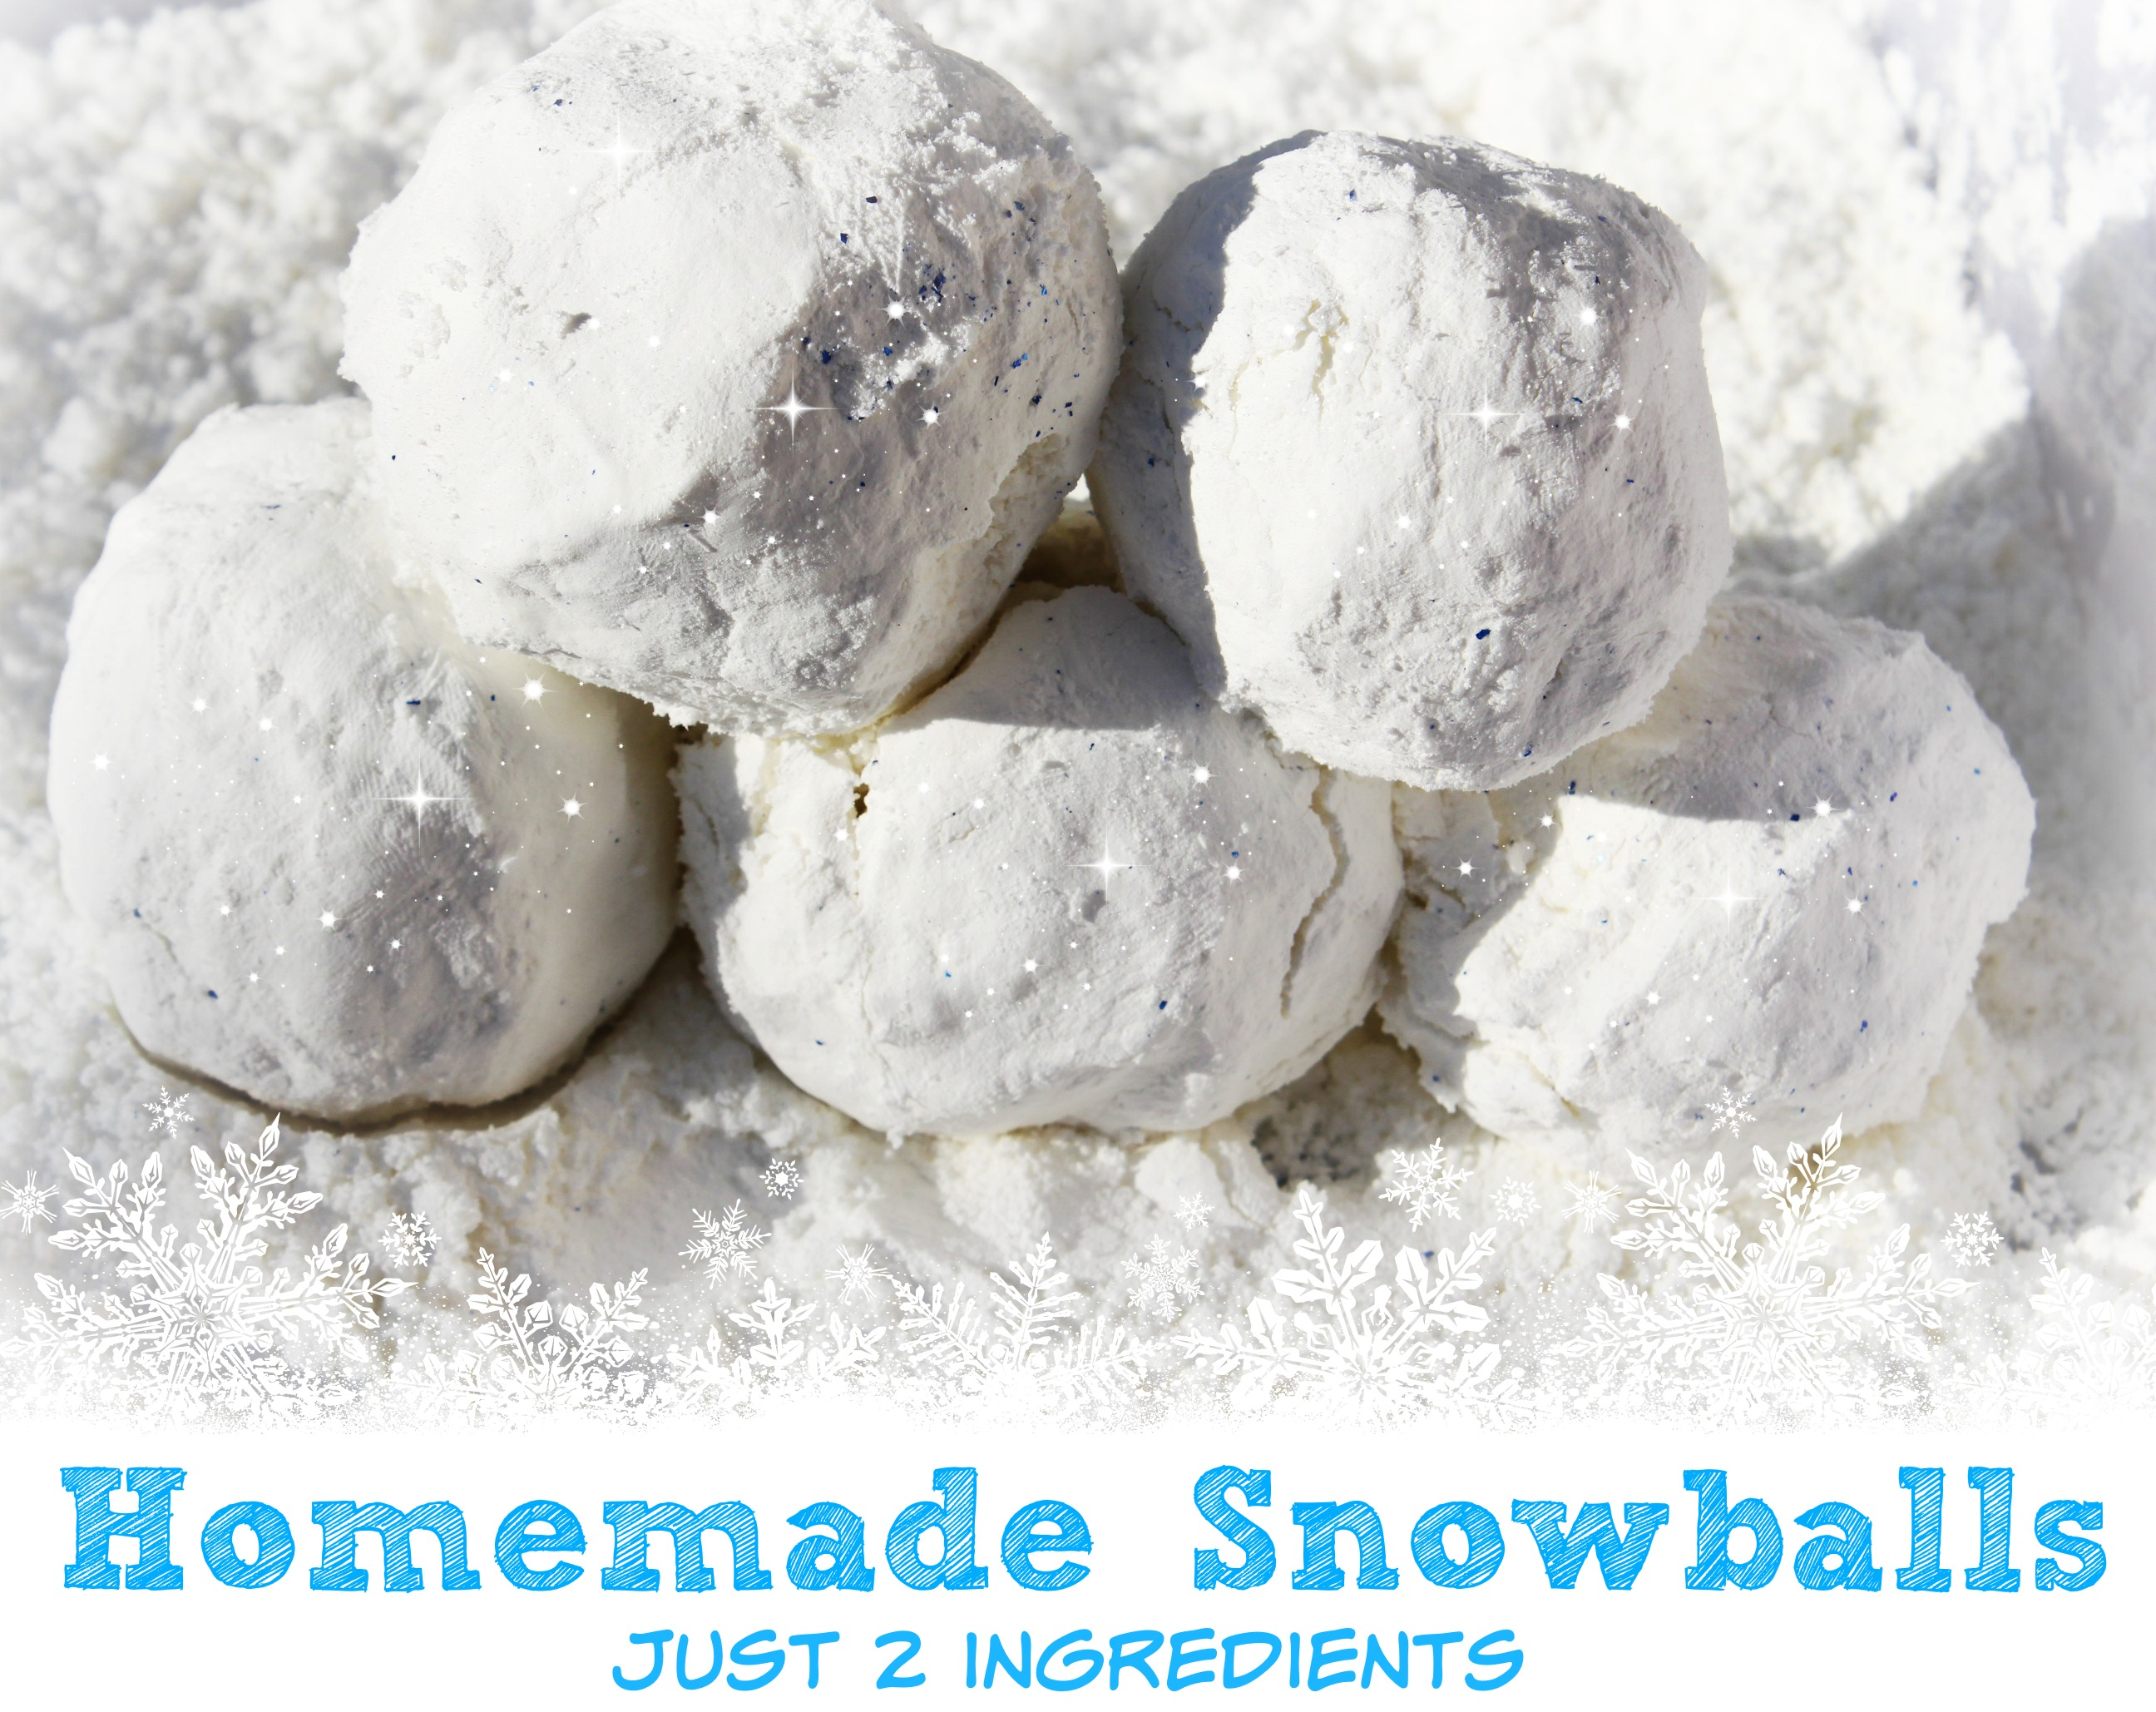 Homemade Snowballs…2 ingredients for a backyard snowball fight!